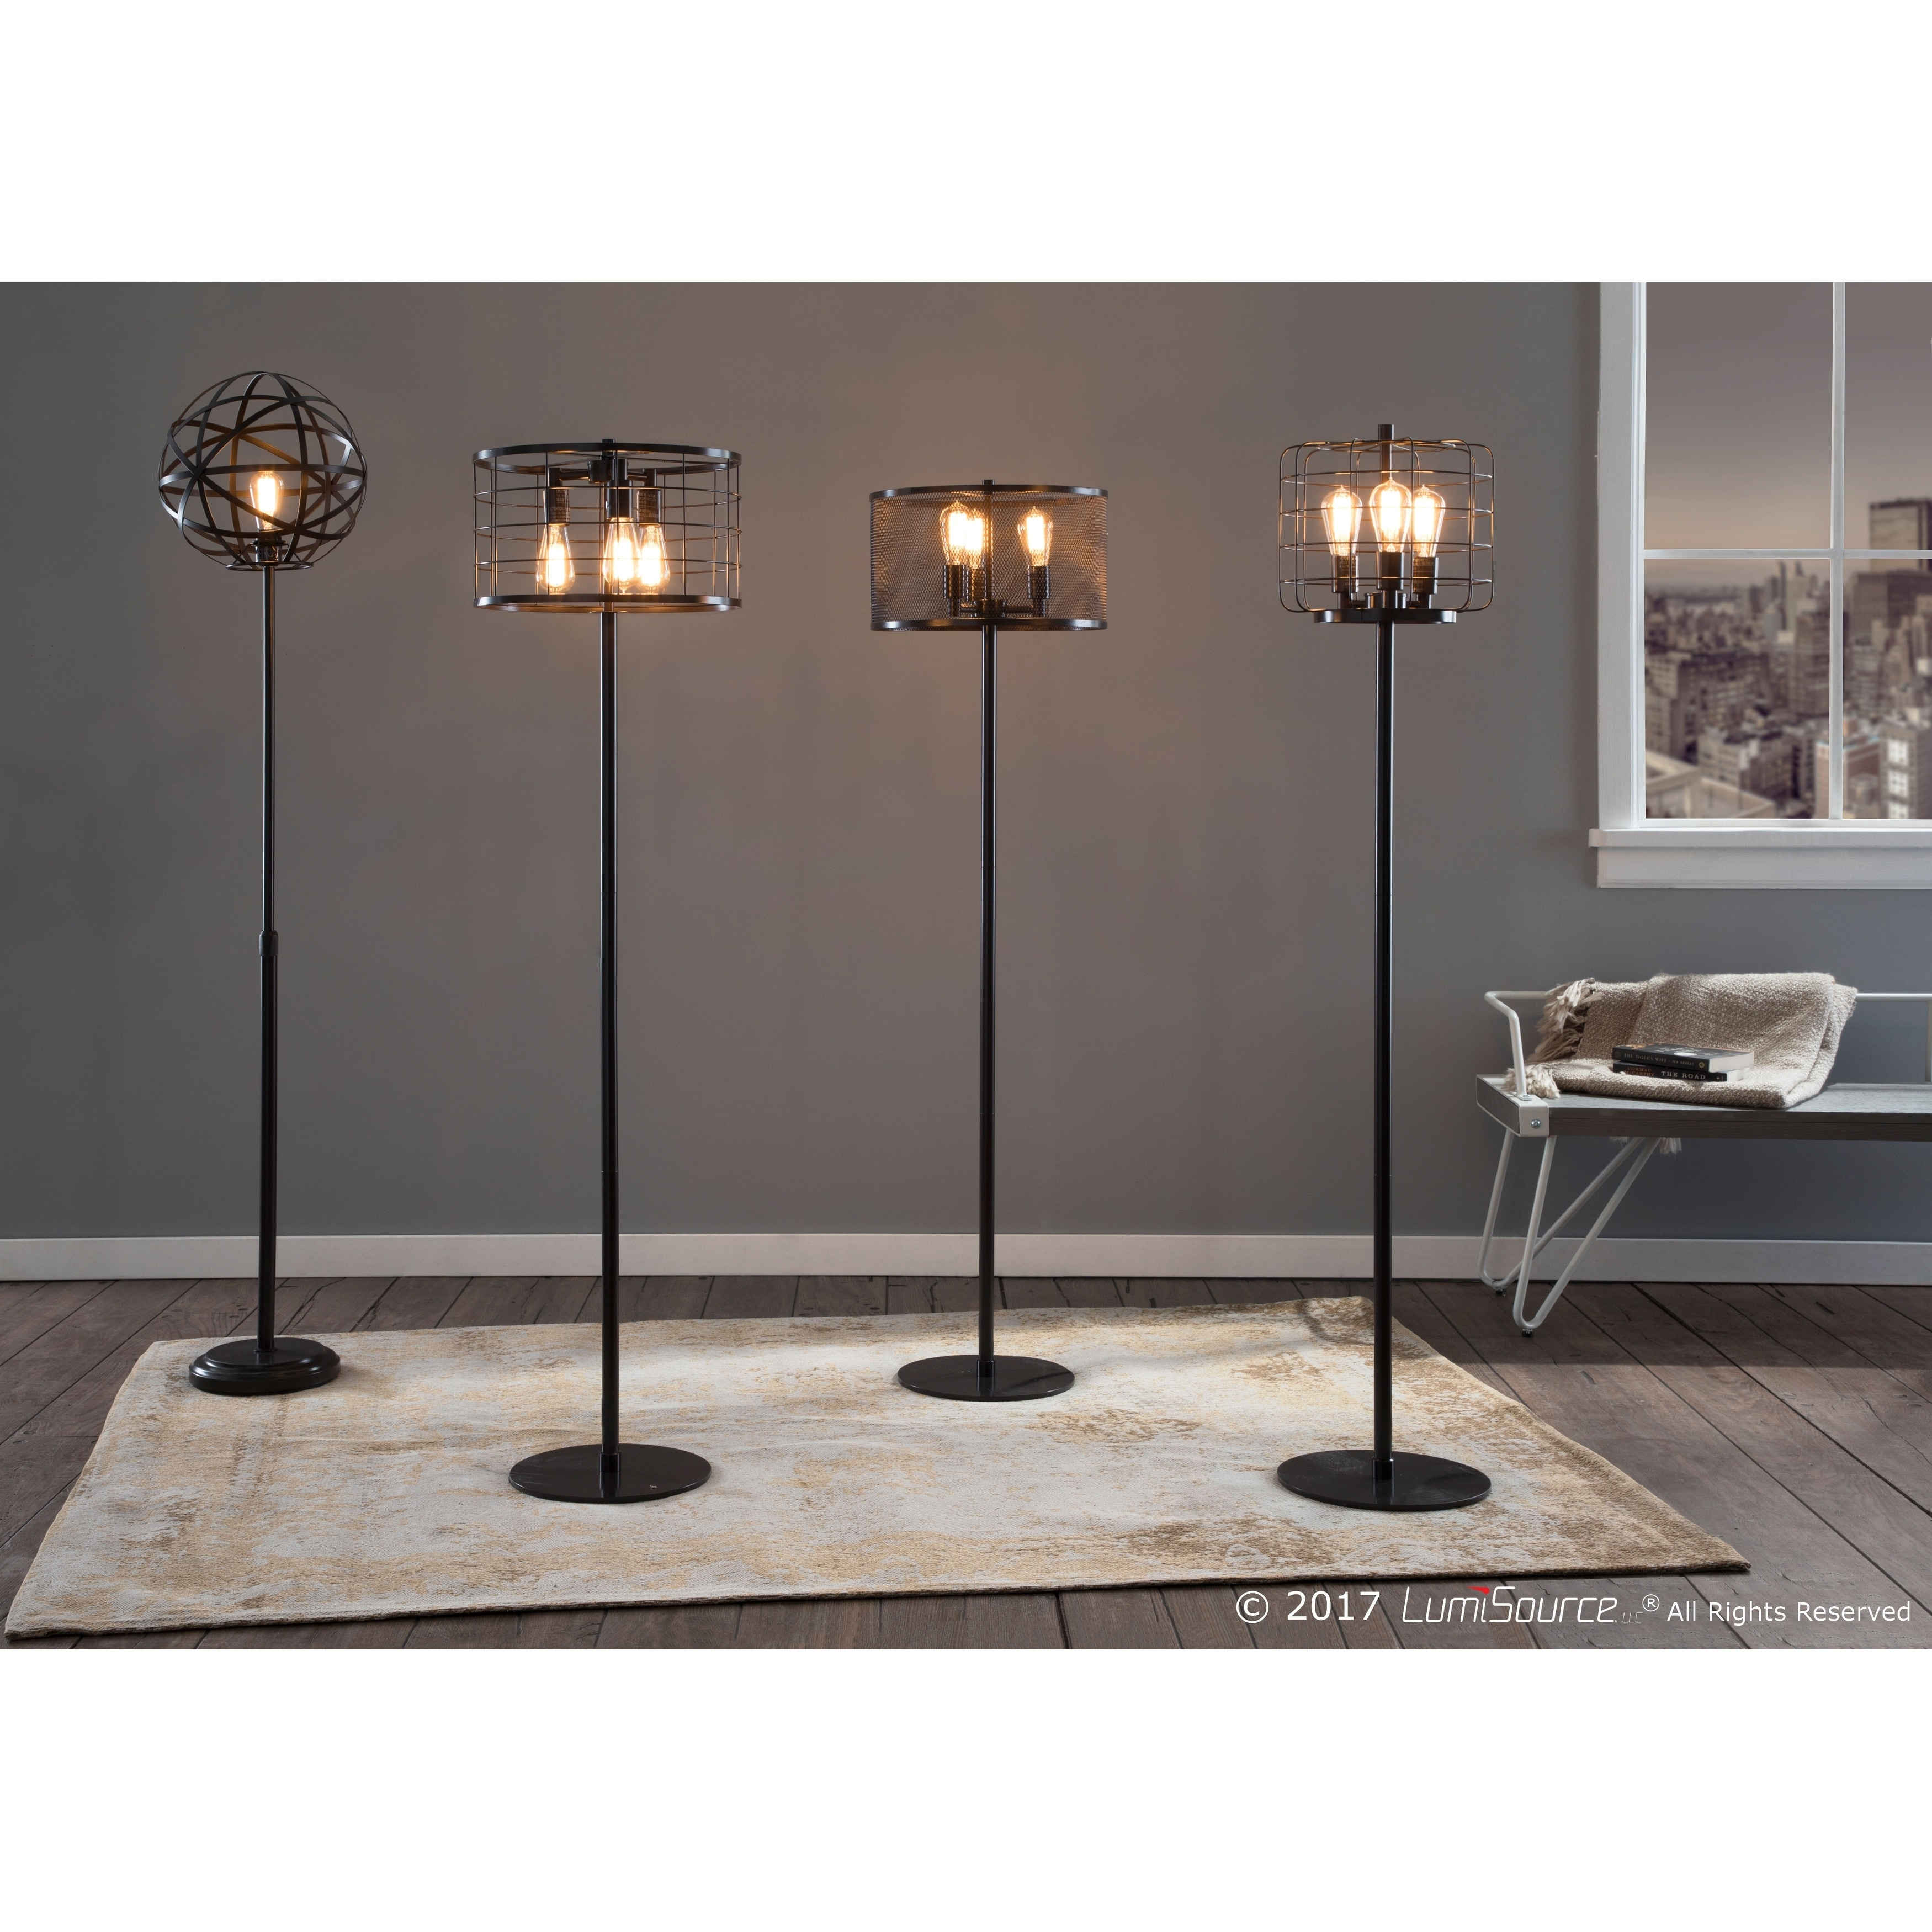 Indy wire floor lamp with antique finished metal free shipping indy wire floor lamp with antique finished metal free shipping today overstock 23864081 keyboard keysfo Image collections